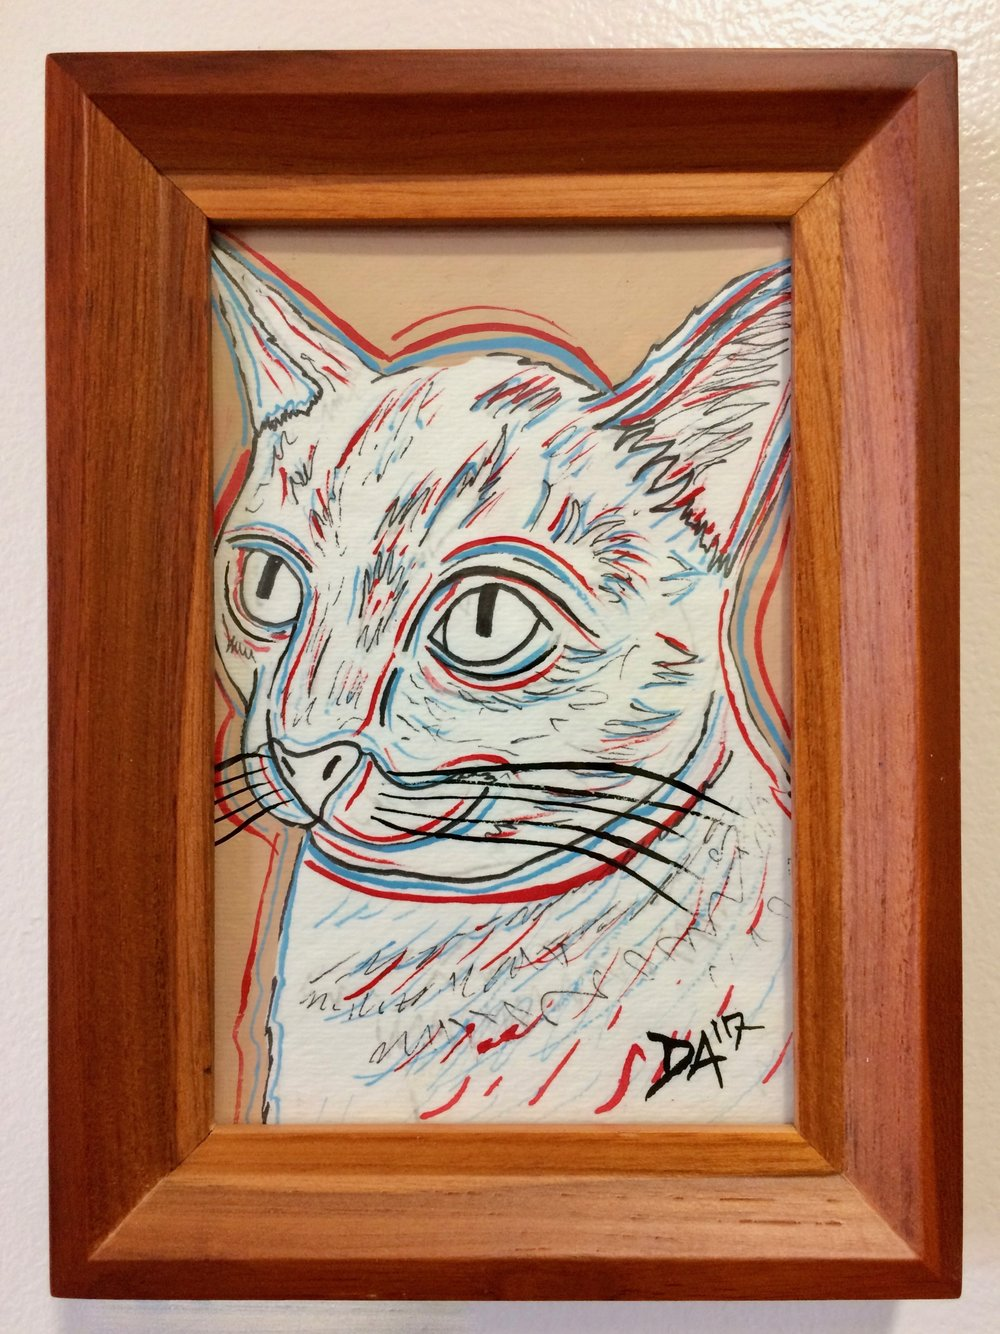 Oswald was also featured in our recent art show located at the Cat Town and his lucky adopter will also get to take home his likeness in a lovely art piece to commemorate the occasion.